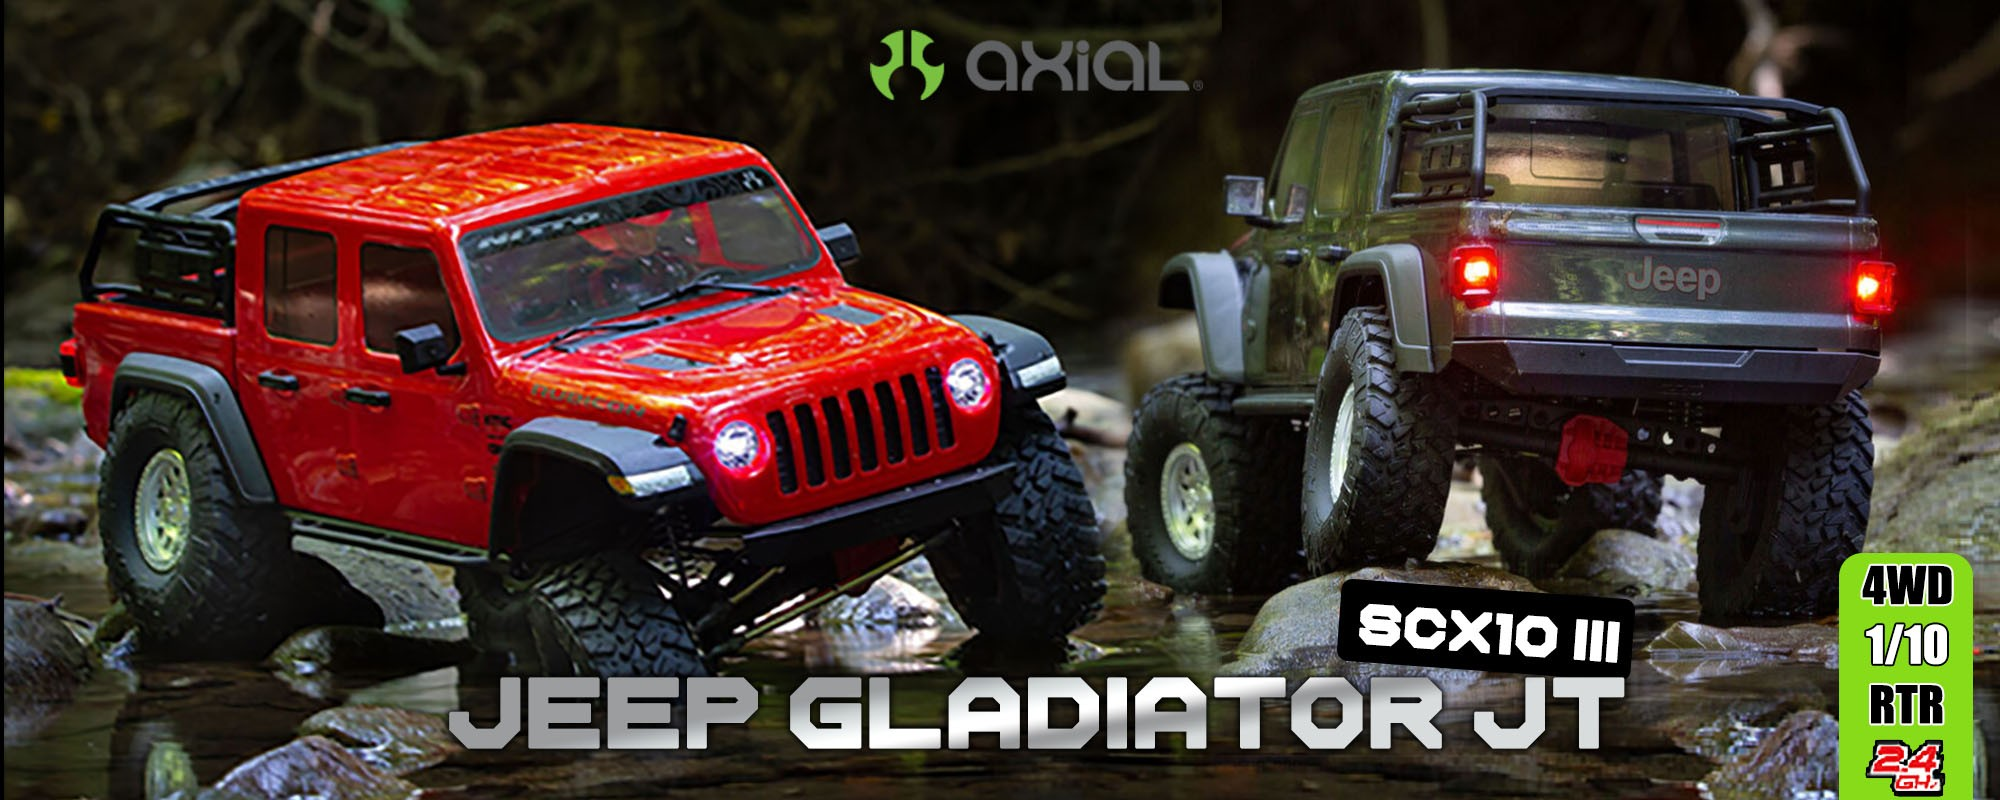 JEEP AXIAL